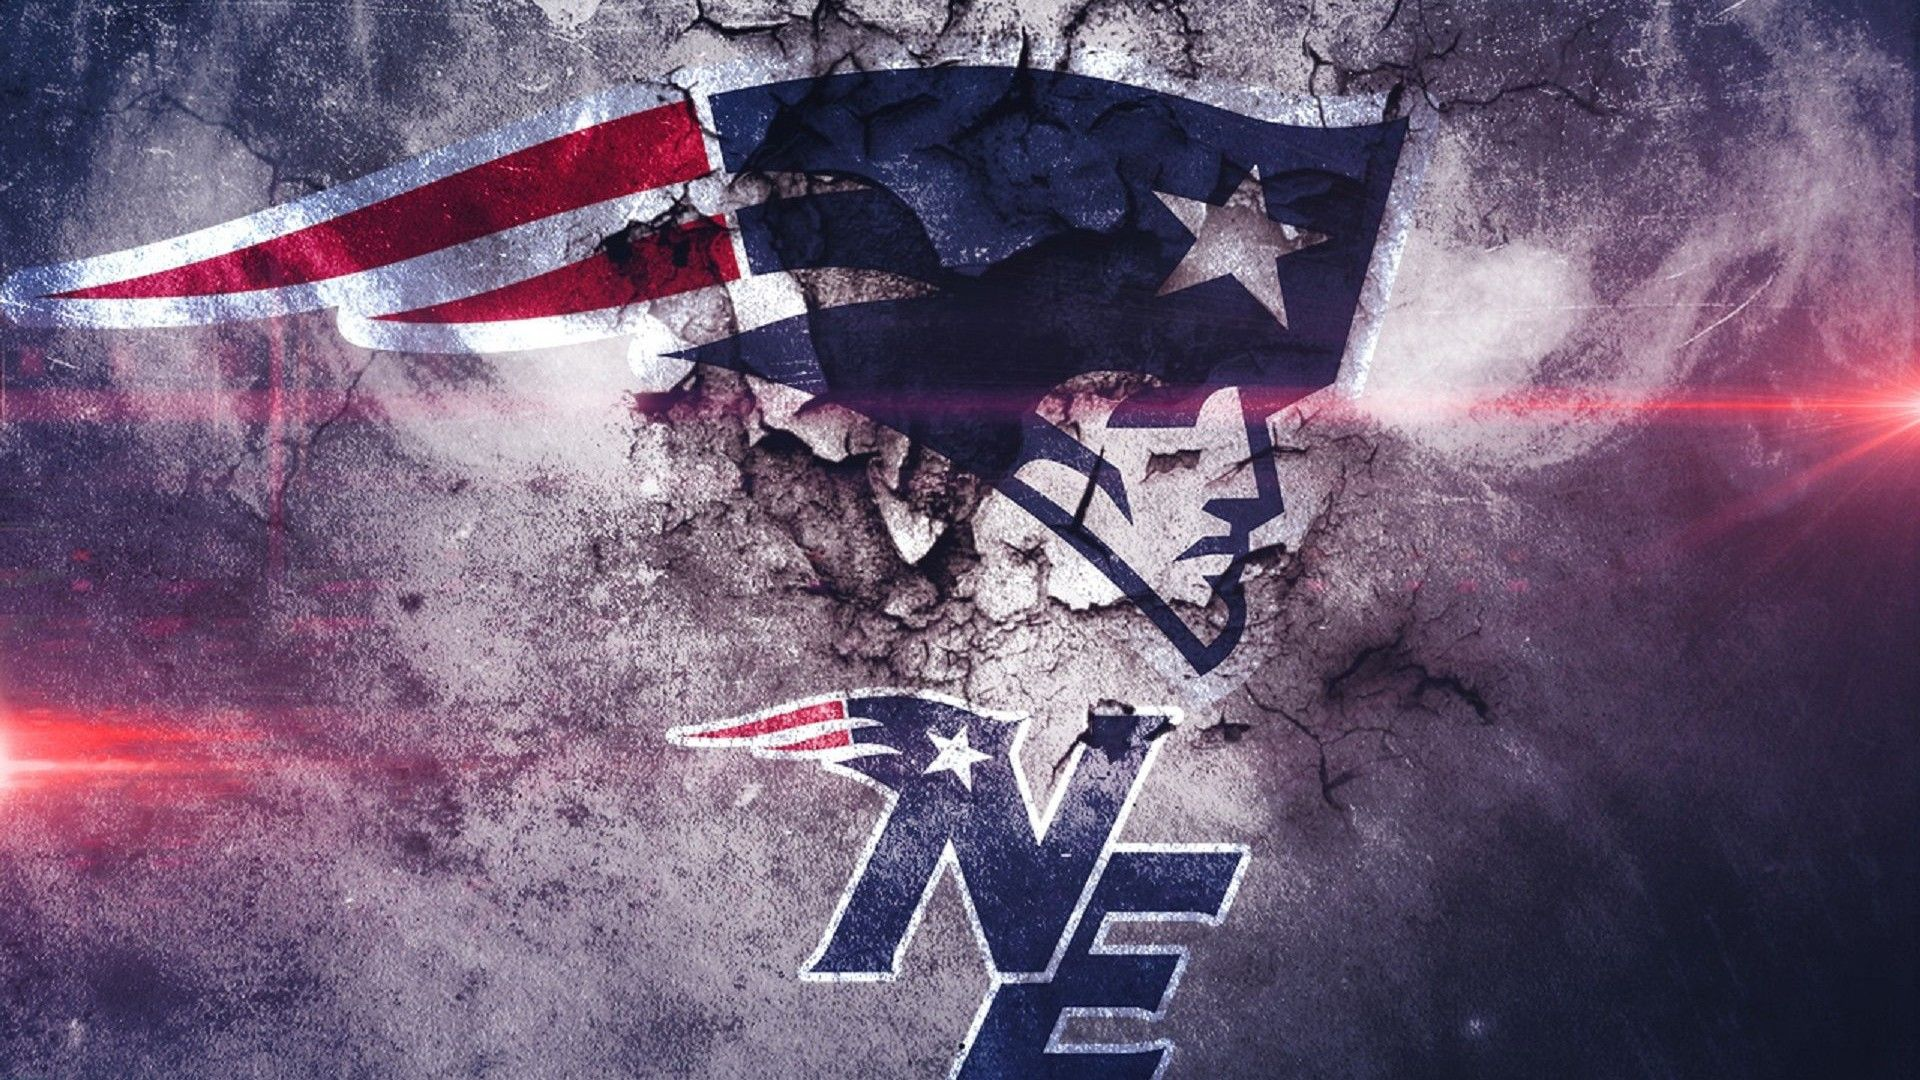 Wallpapers HD New England Patriots New england patriots